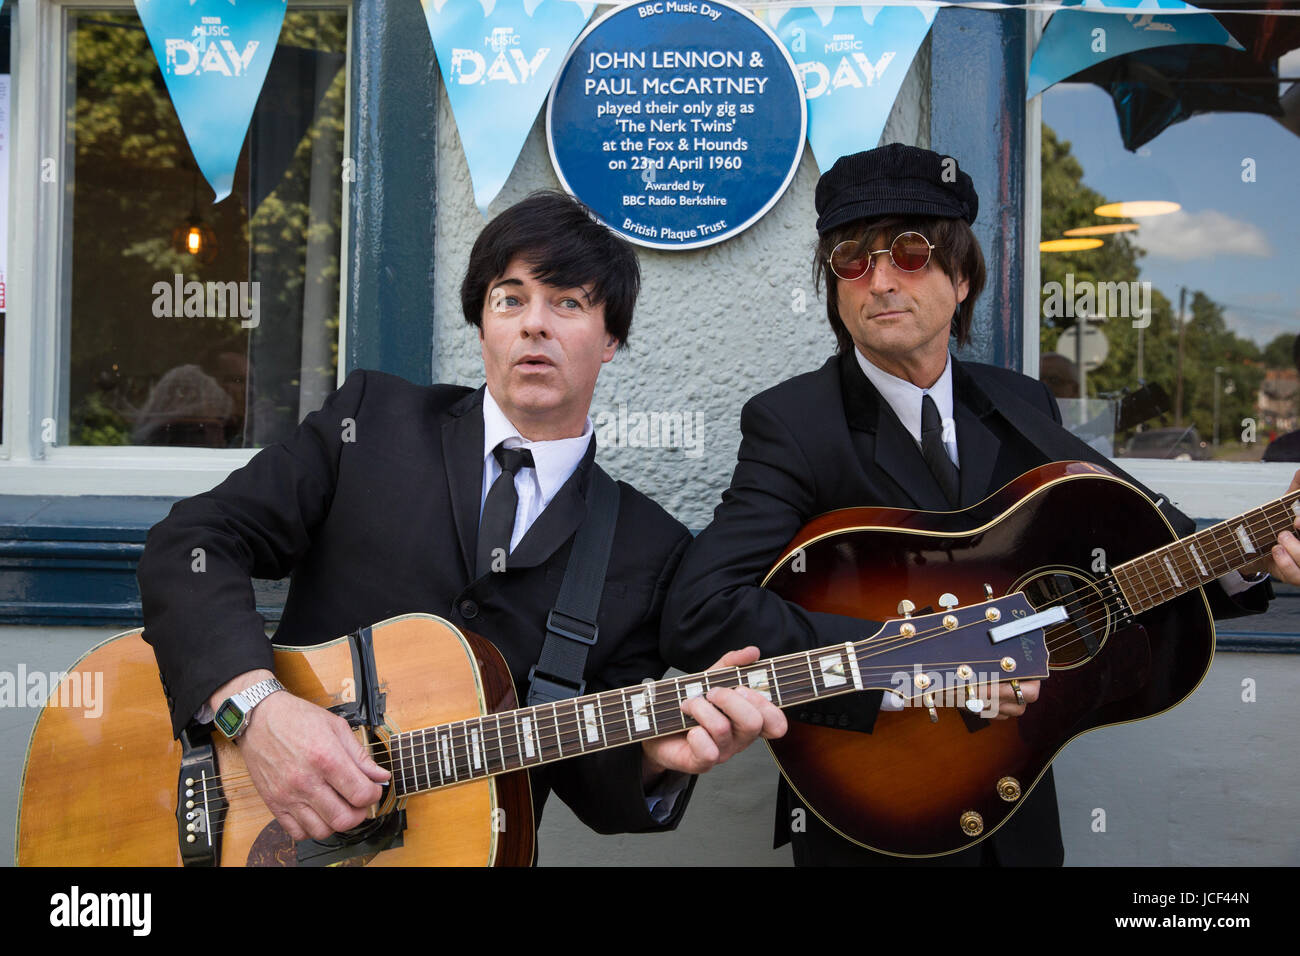 15th June 2017 Beatles Tribute Band The Upbeat Play After Actor Singer And Songwriter Kate Robbins Unveiled A Blue Plaque On BBC Music Day At